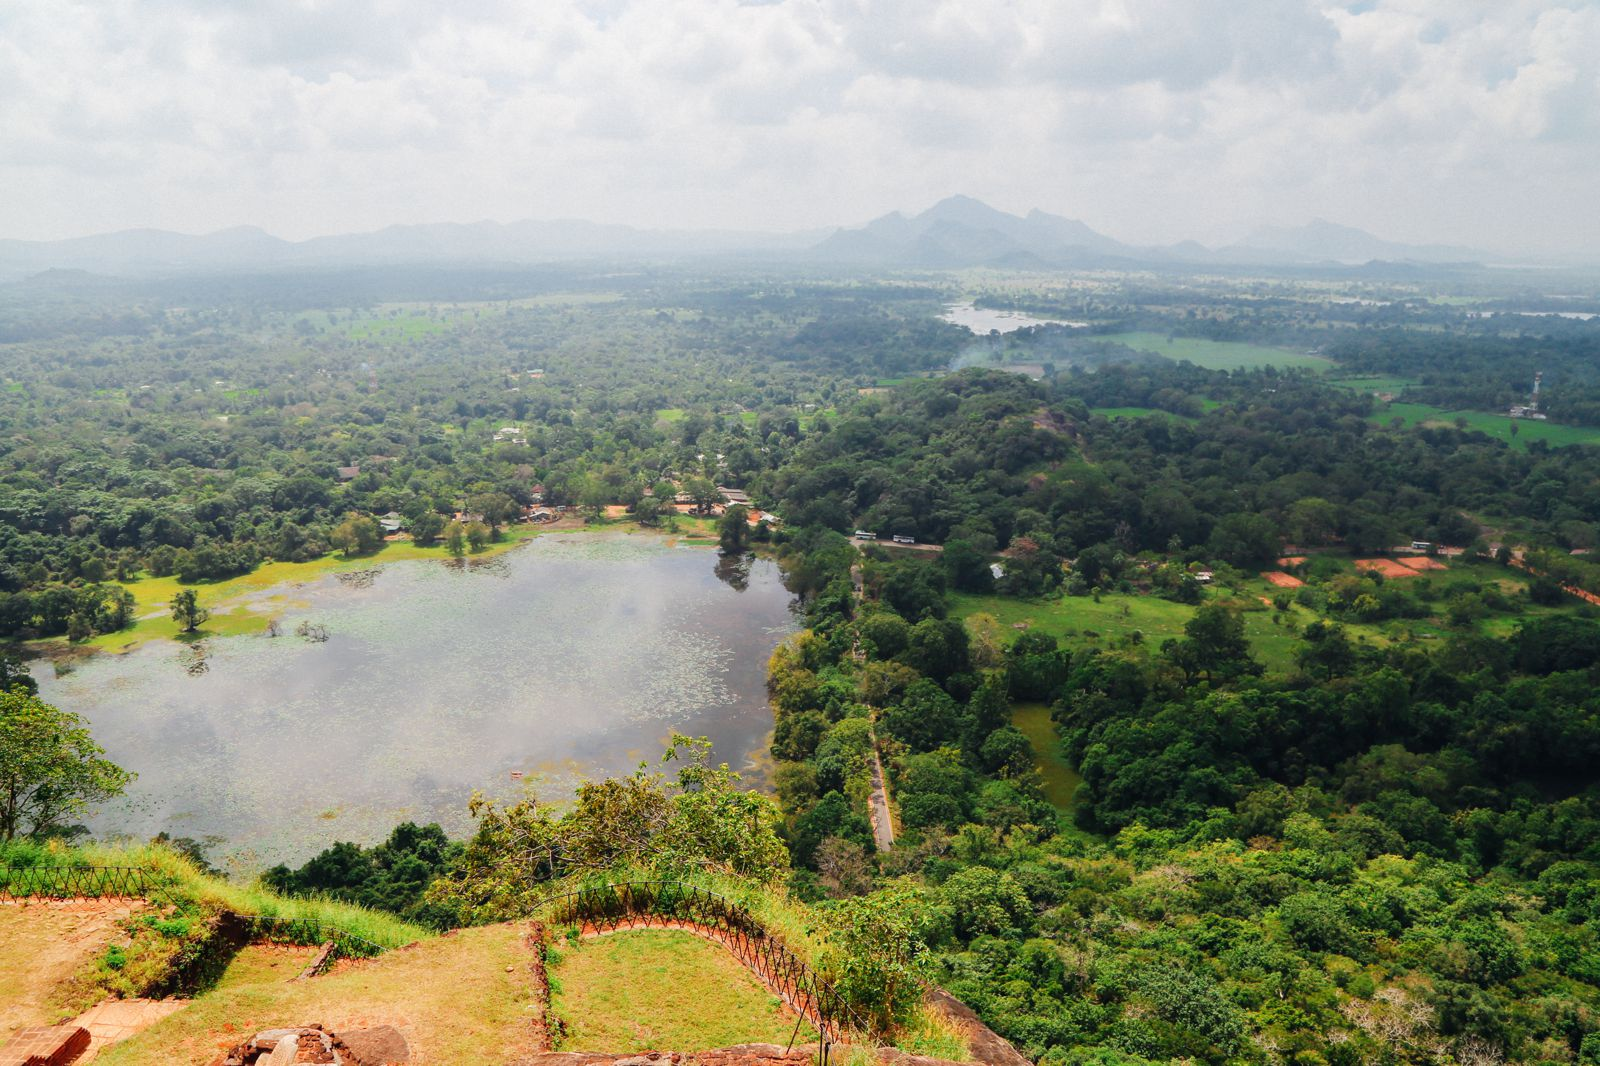 The Complete Guide To Climbing Sri Lanka's UNESCO World Heritage Site Of Sigiriya - Lion Rock (52)